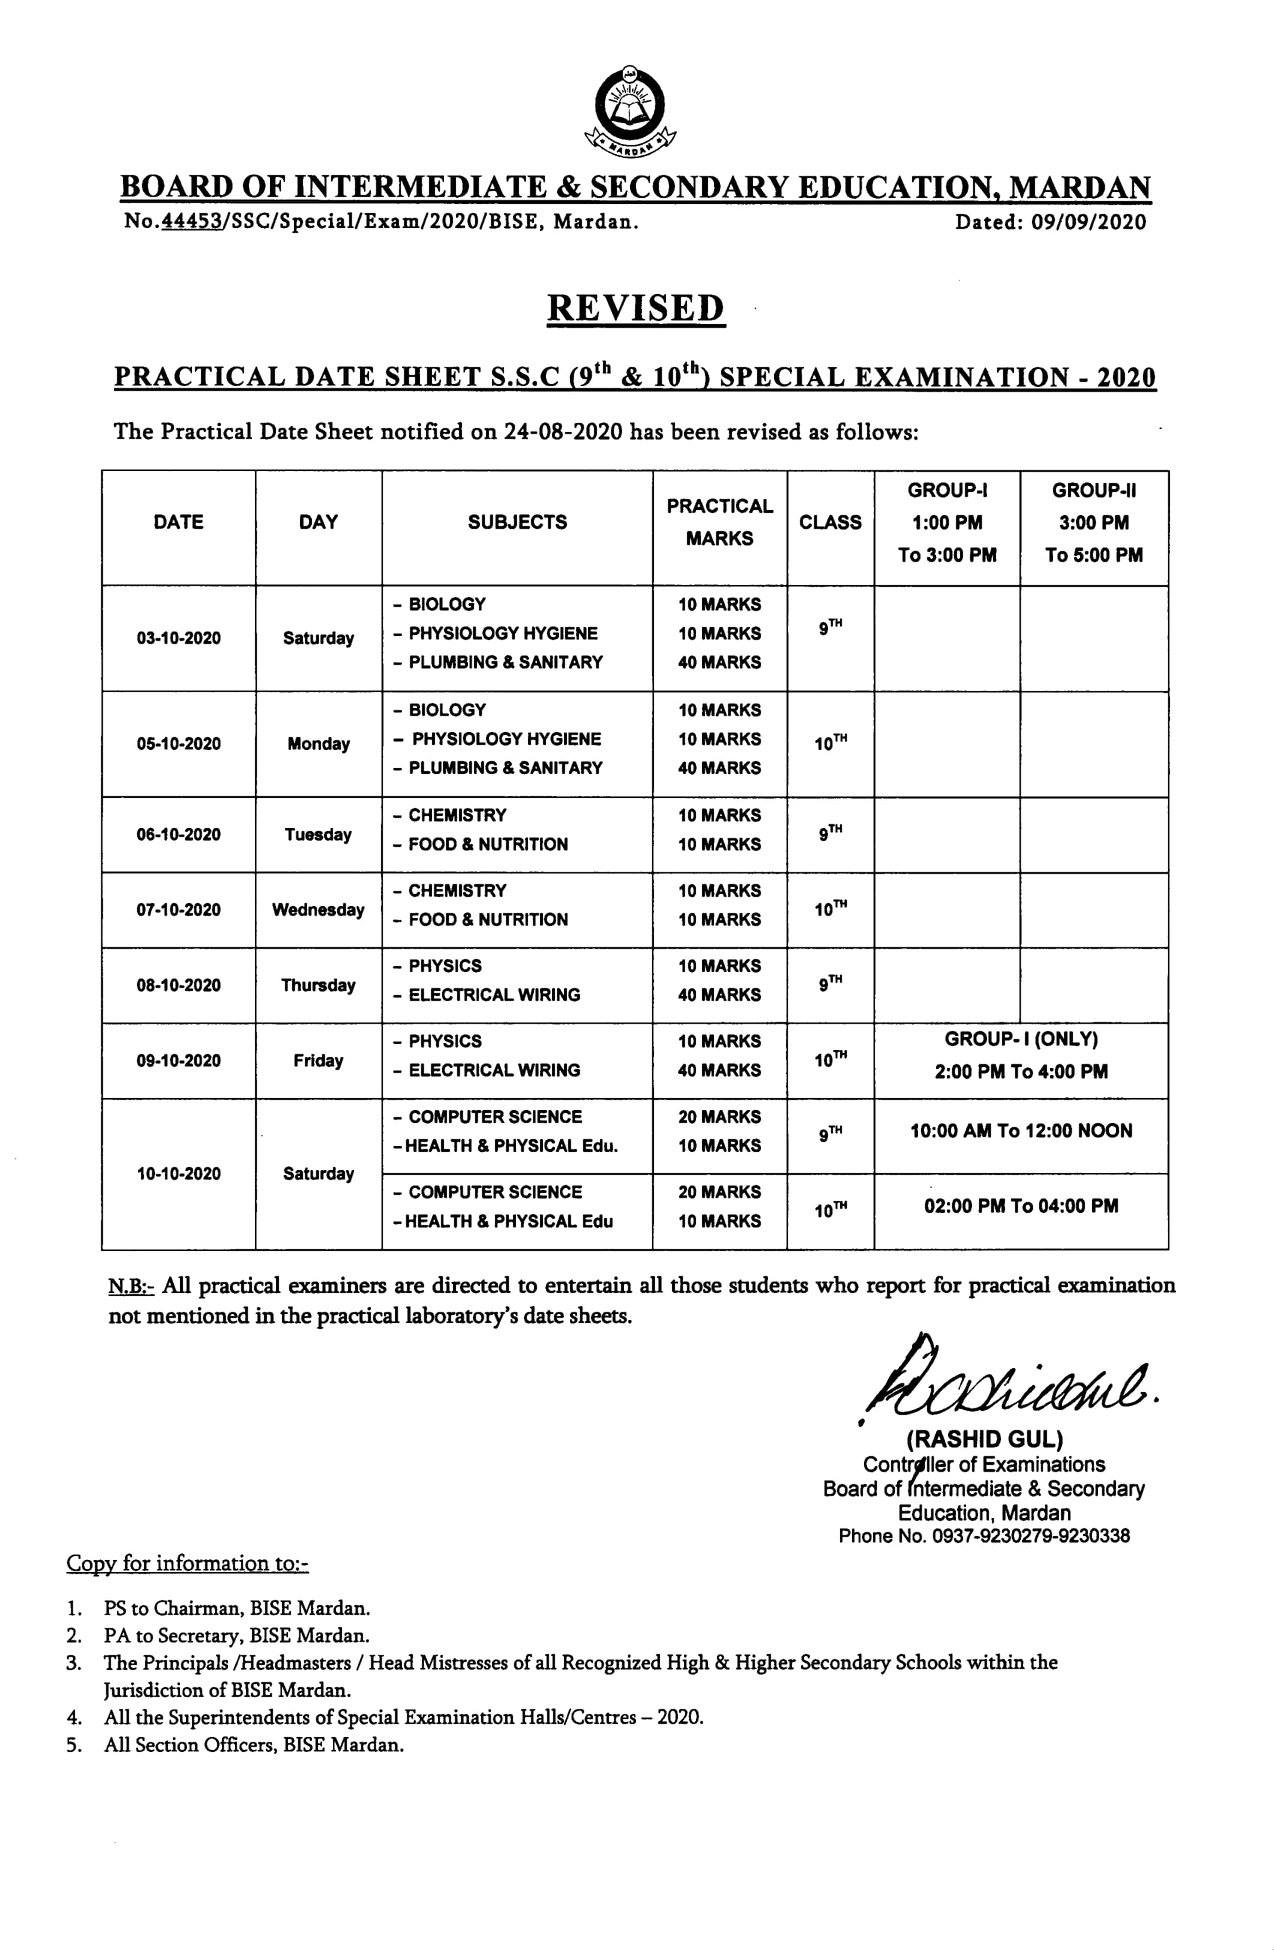 BISE Mardan Revised Practical Date Sheet & Roll Number Slips Special Exams 2020